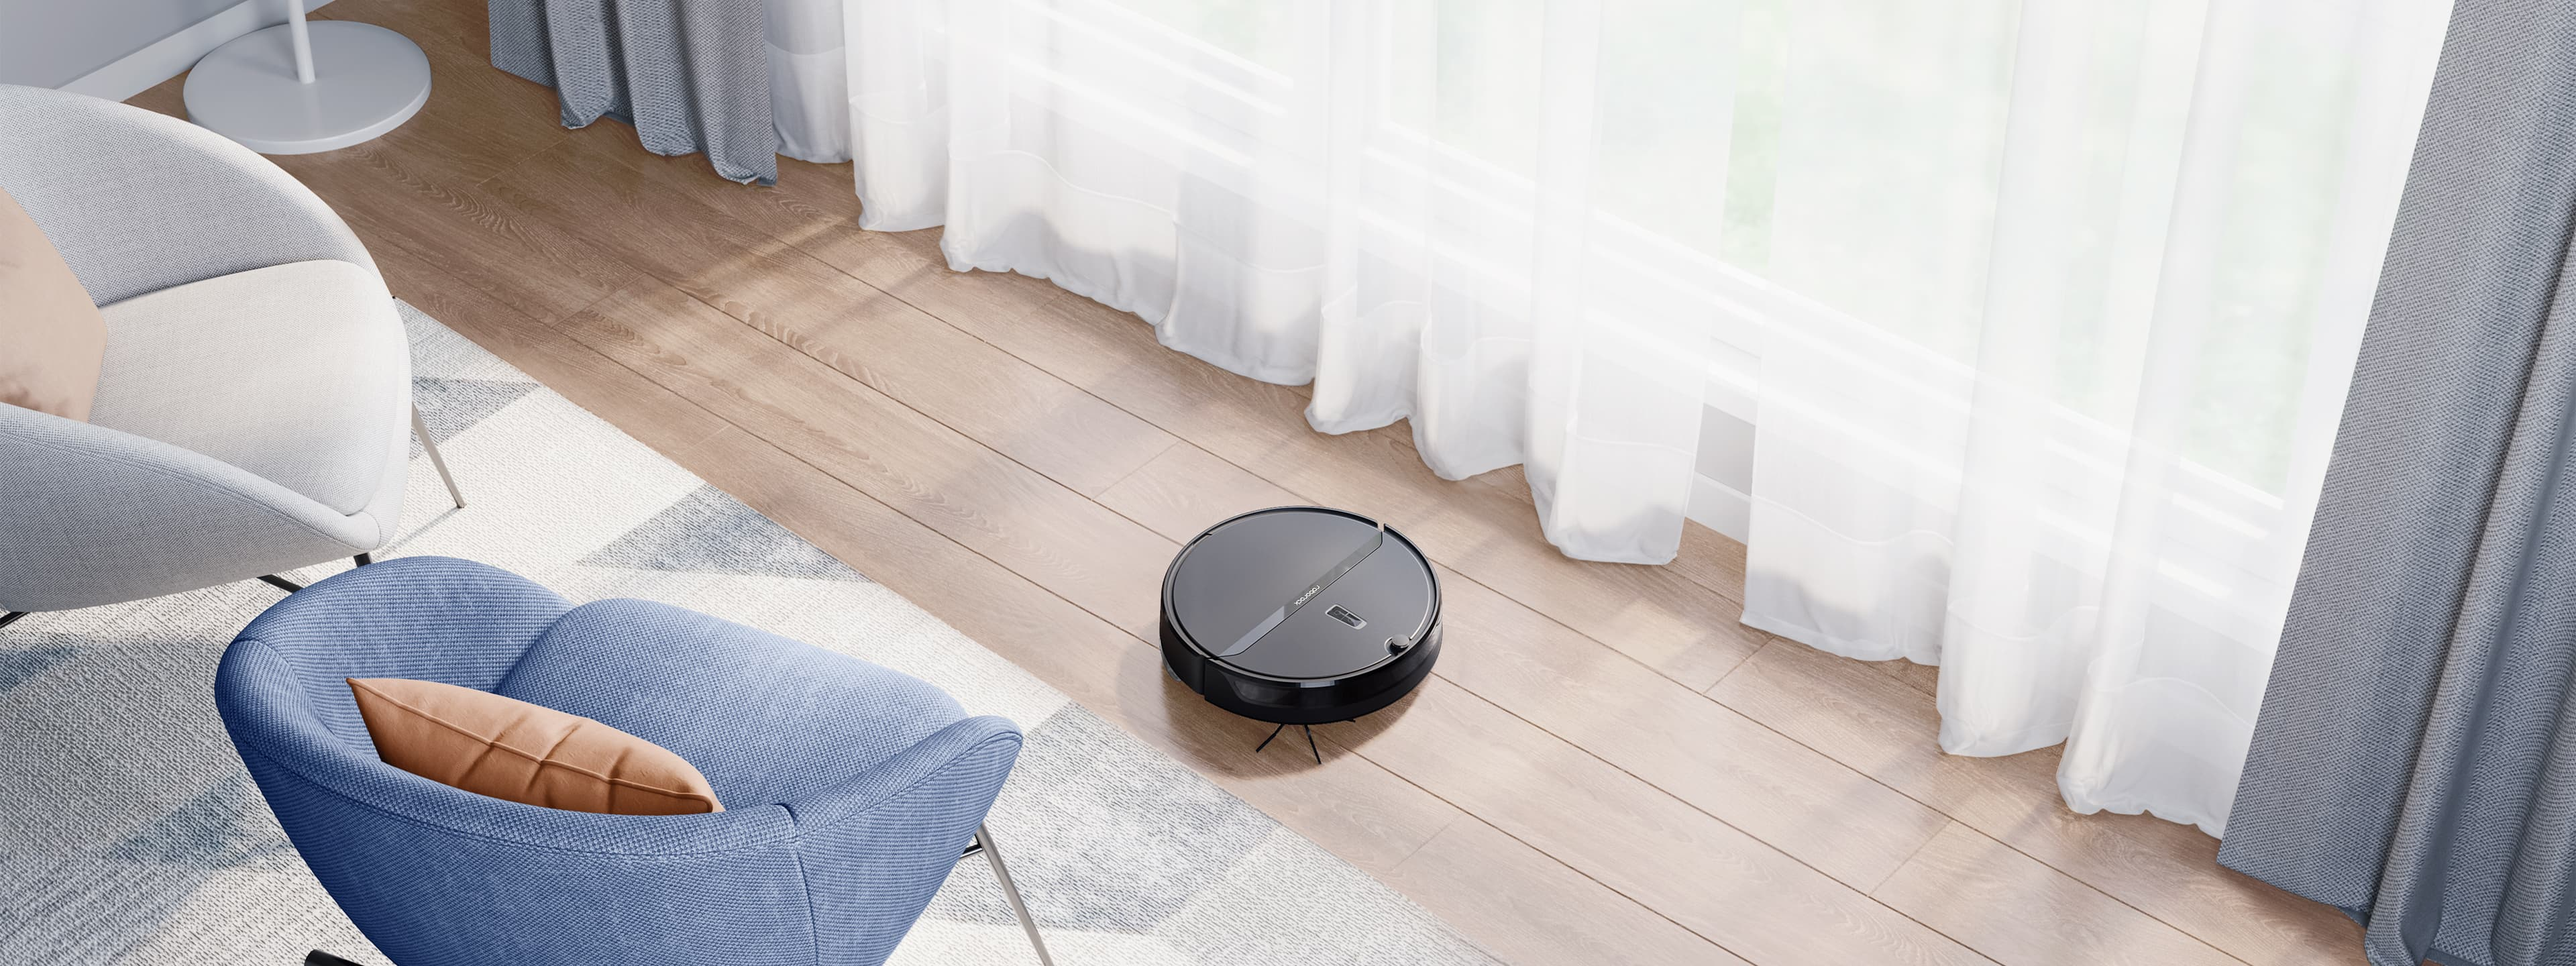 Roborock S4 Robot Vacuum Cleaner - Easy, Effective Home Cleaning